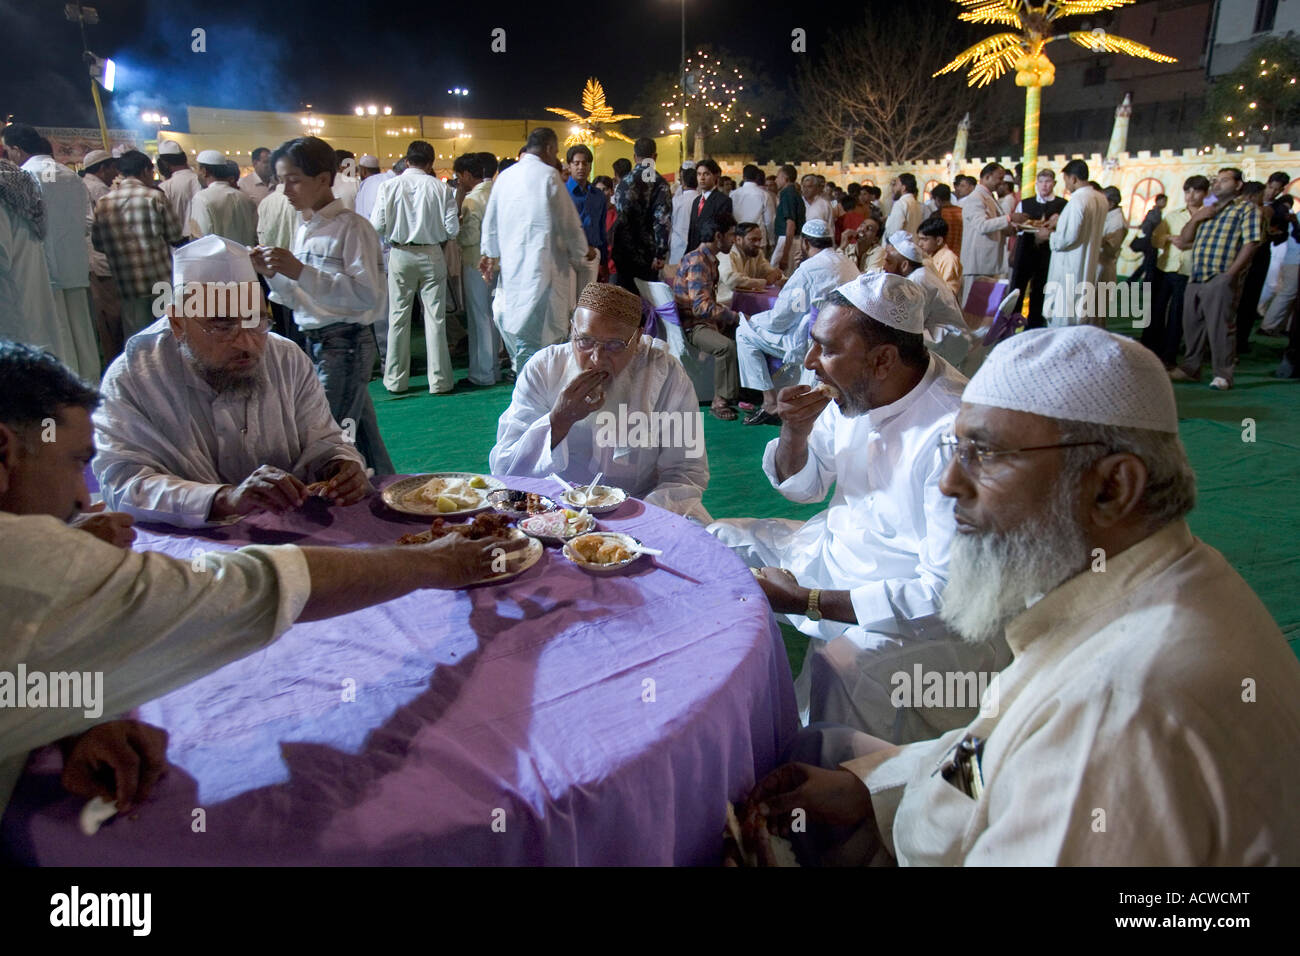 Men socializing at the Wedding of the son of the imam of Delhi India with soldiers and 2000 guests - Stock Image